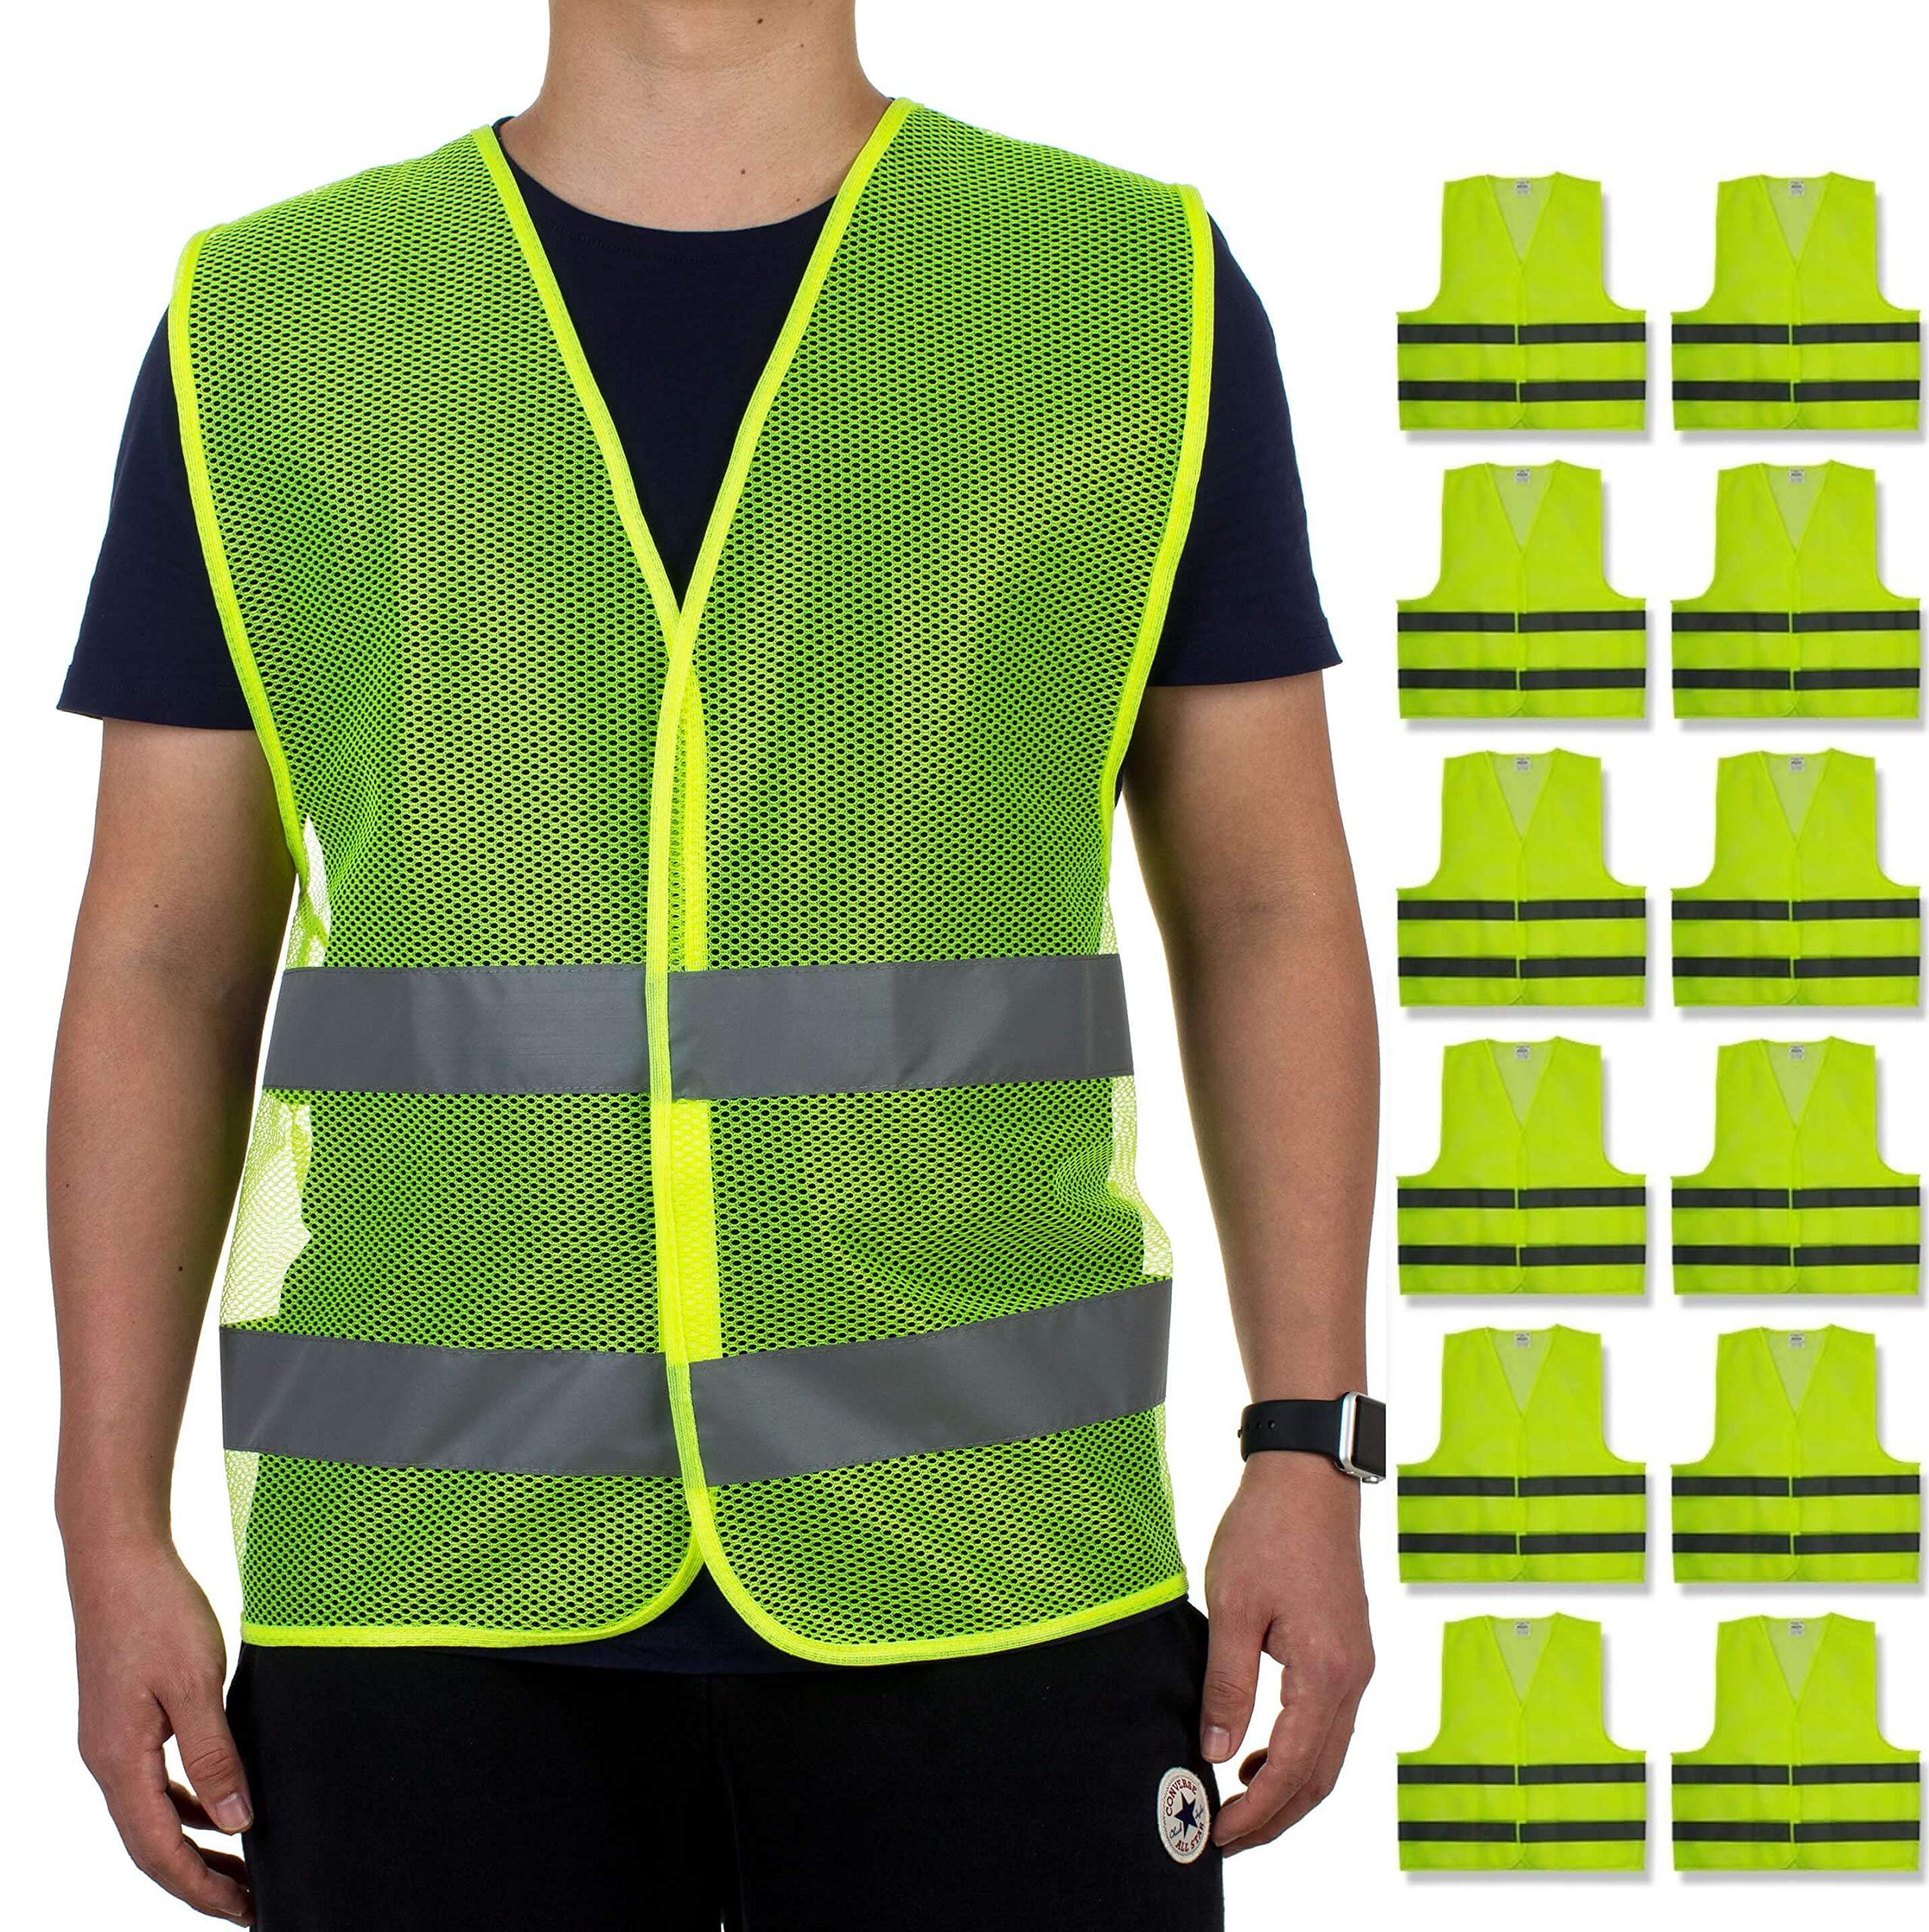 Reflective Safety Vests - Pack of 12 | High Visibility Neon Yellow Mesh | Fits Men and Women | For Construction and Surveyor Work, Security, Emergency, Event Volunteers, Traffic and Parking Workers by Kiloo (Image #1)